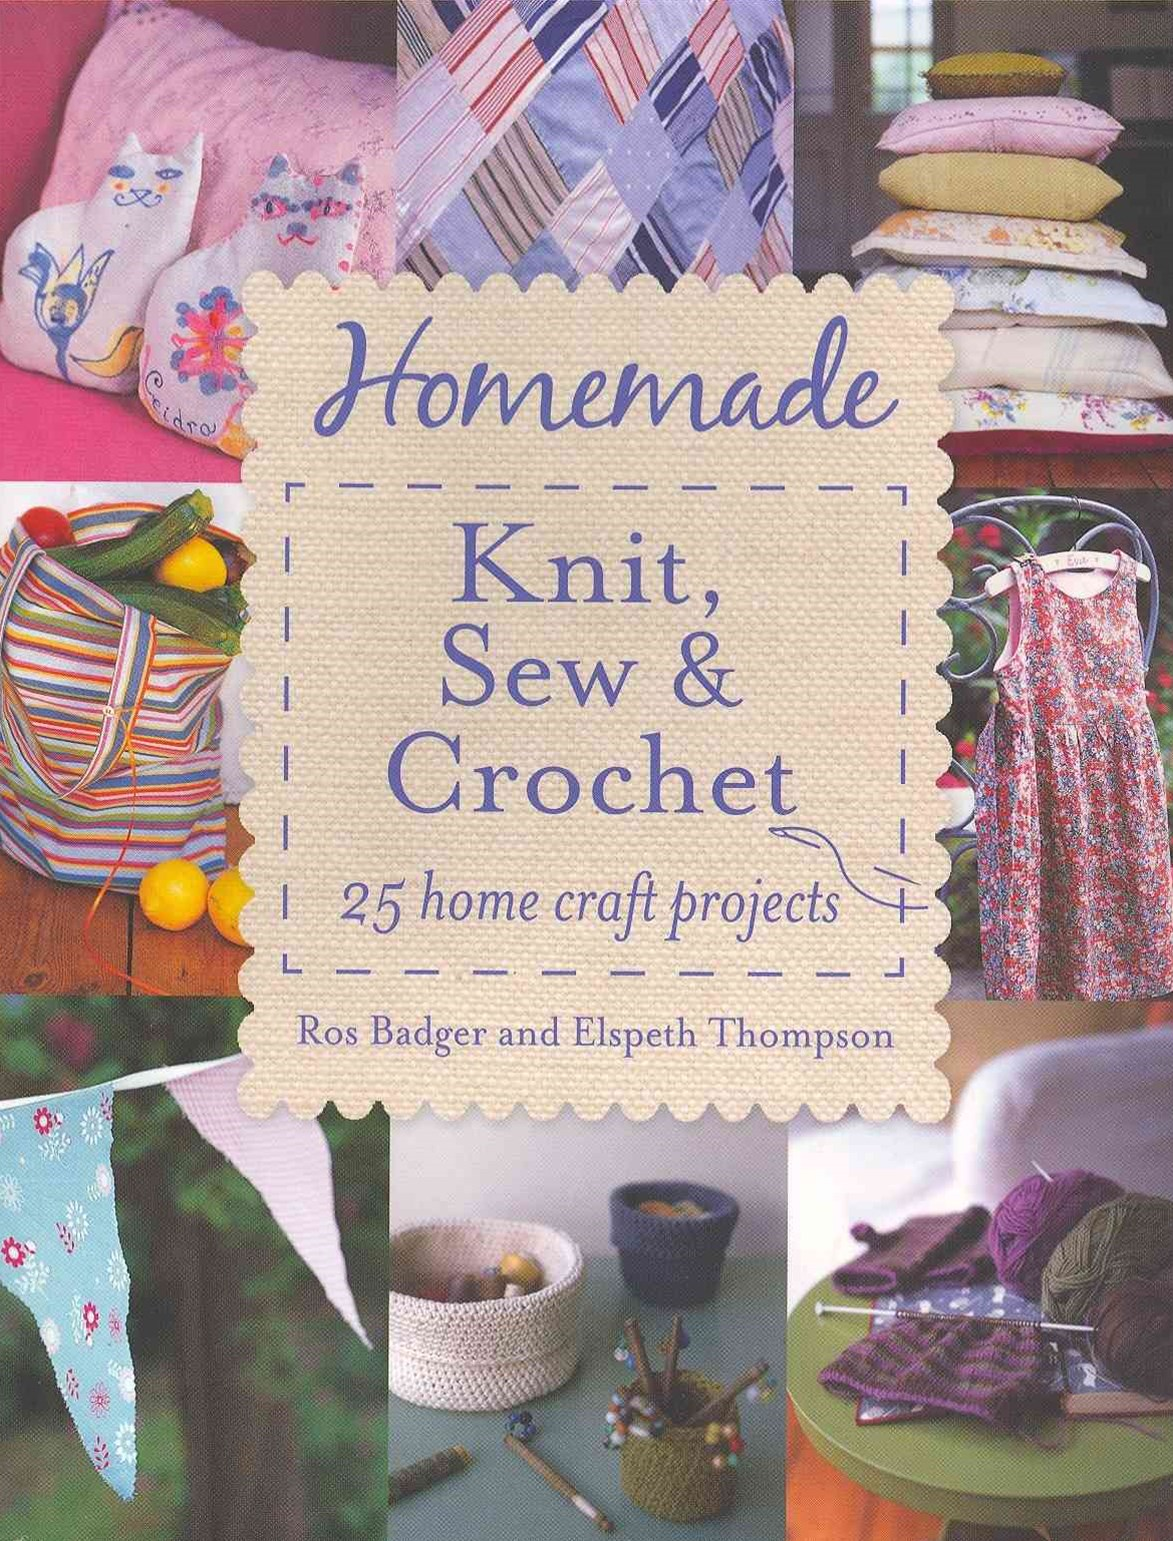 Homemade Knit, Sew and Crochet